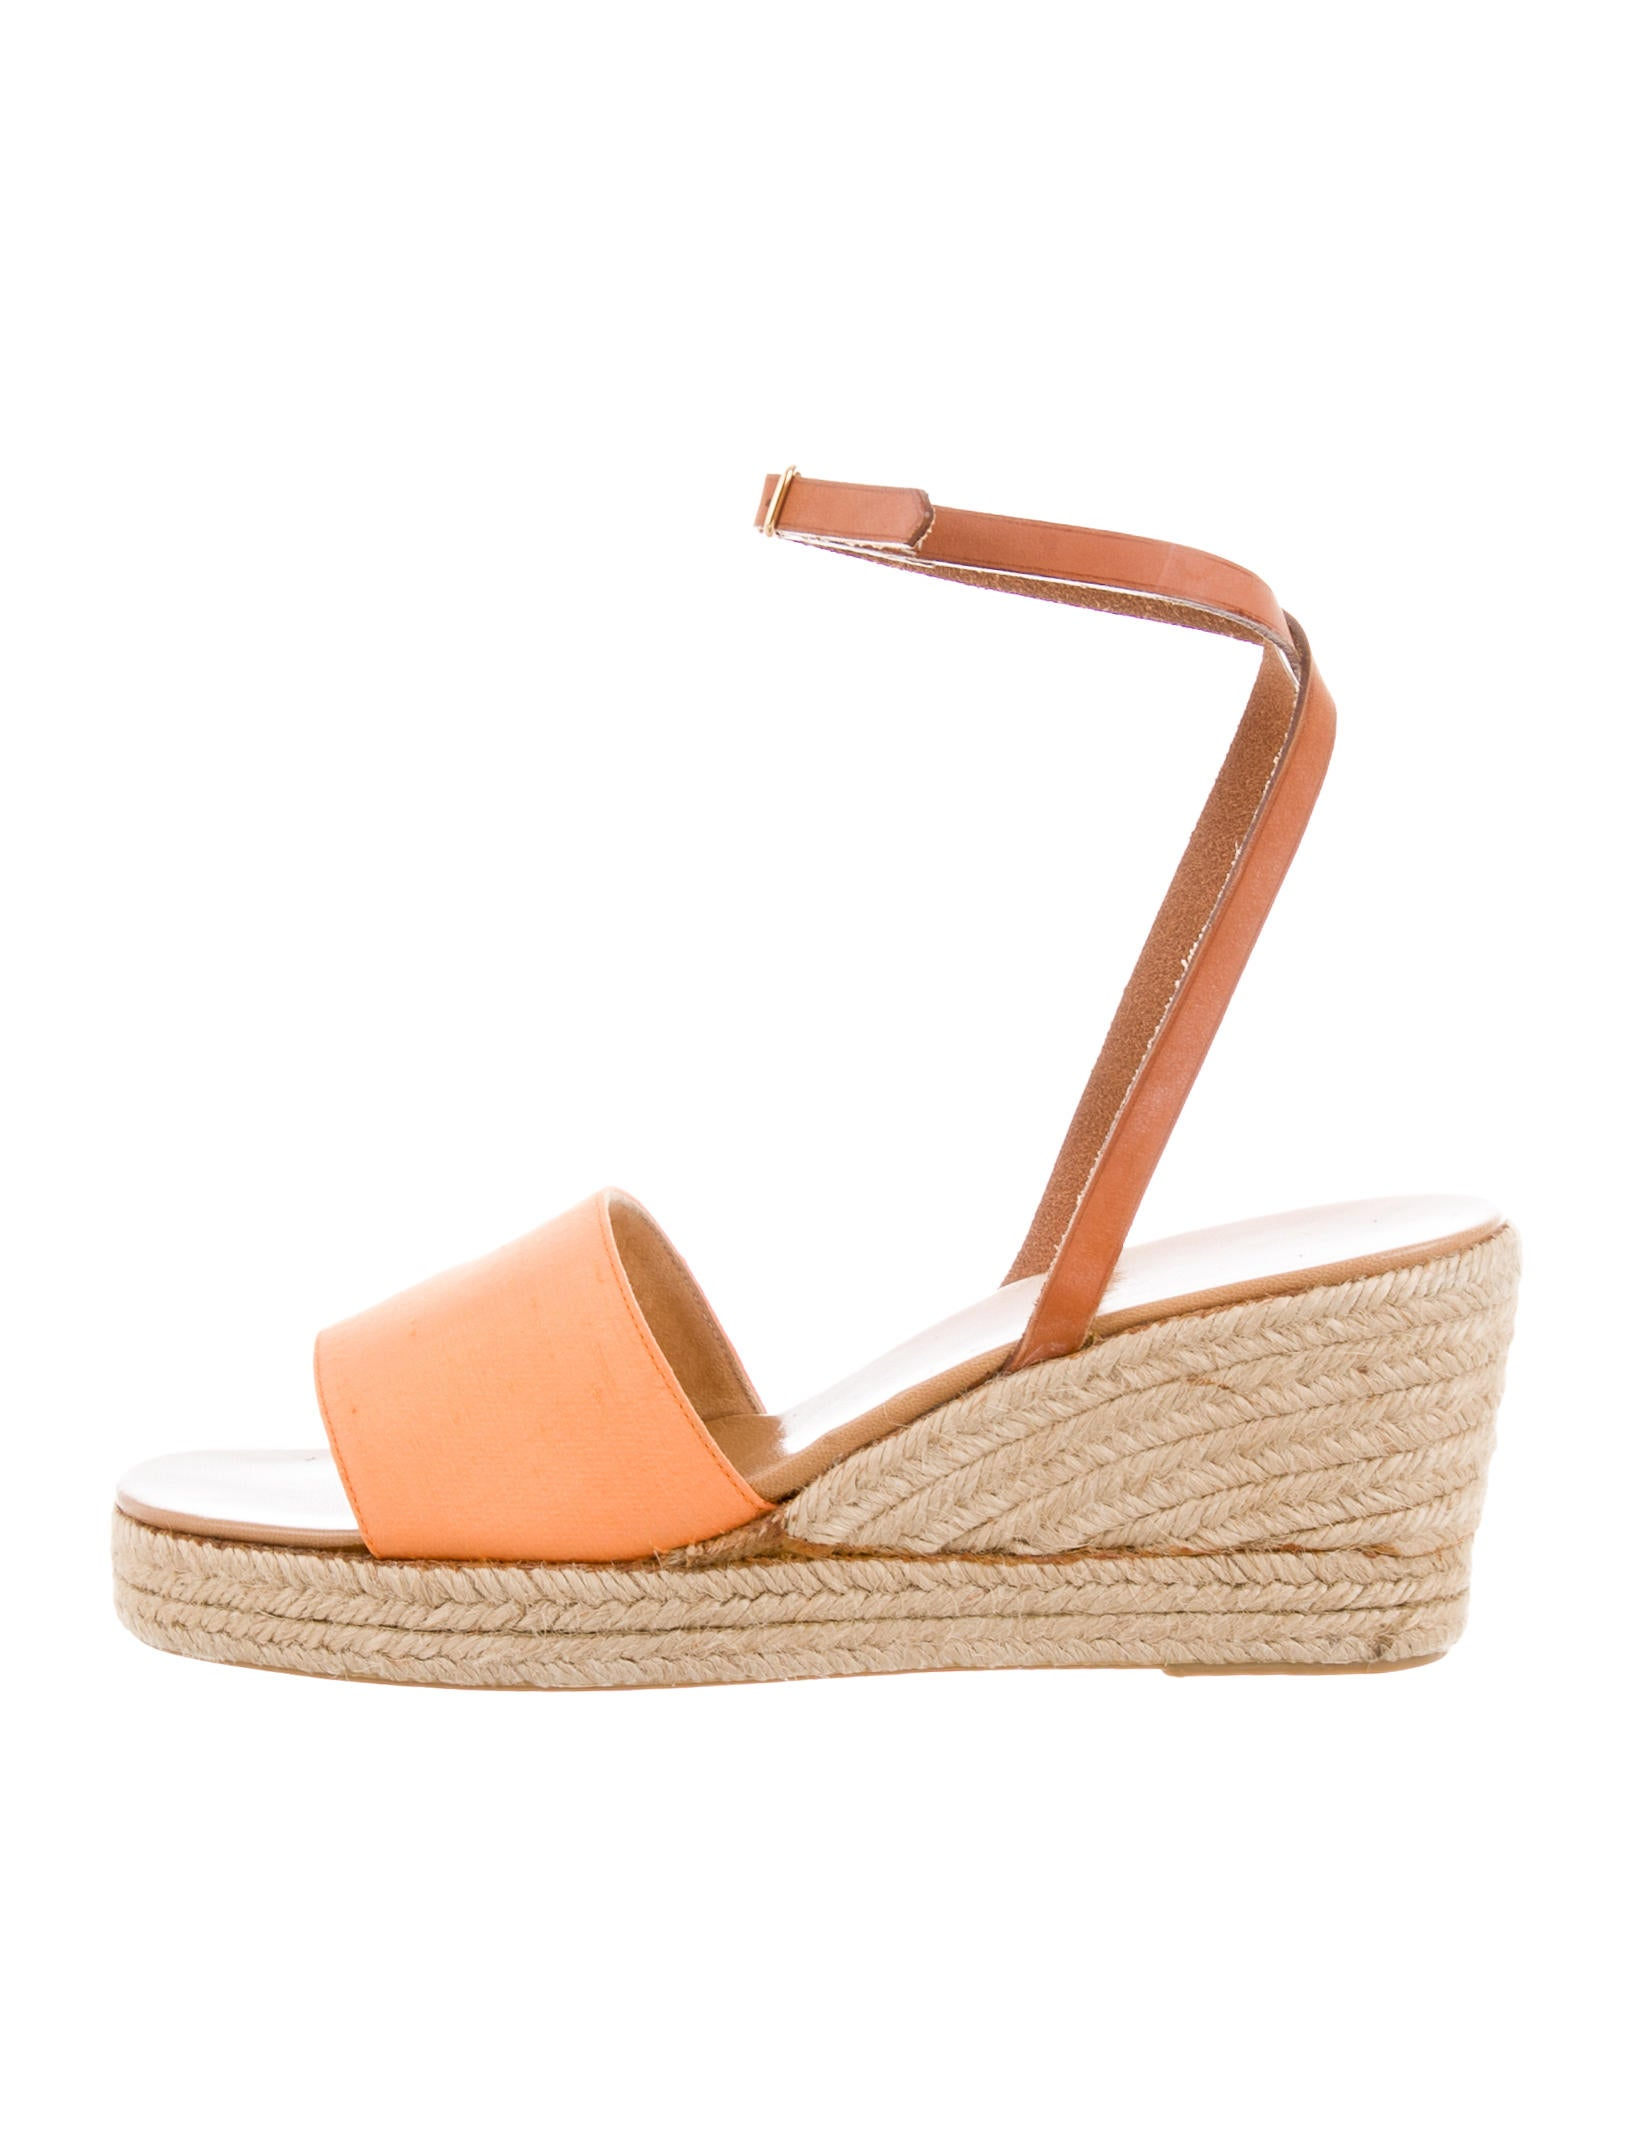 herm 232 s canvas espadrille wedges shoes her107805 the